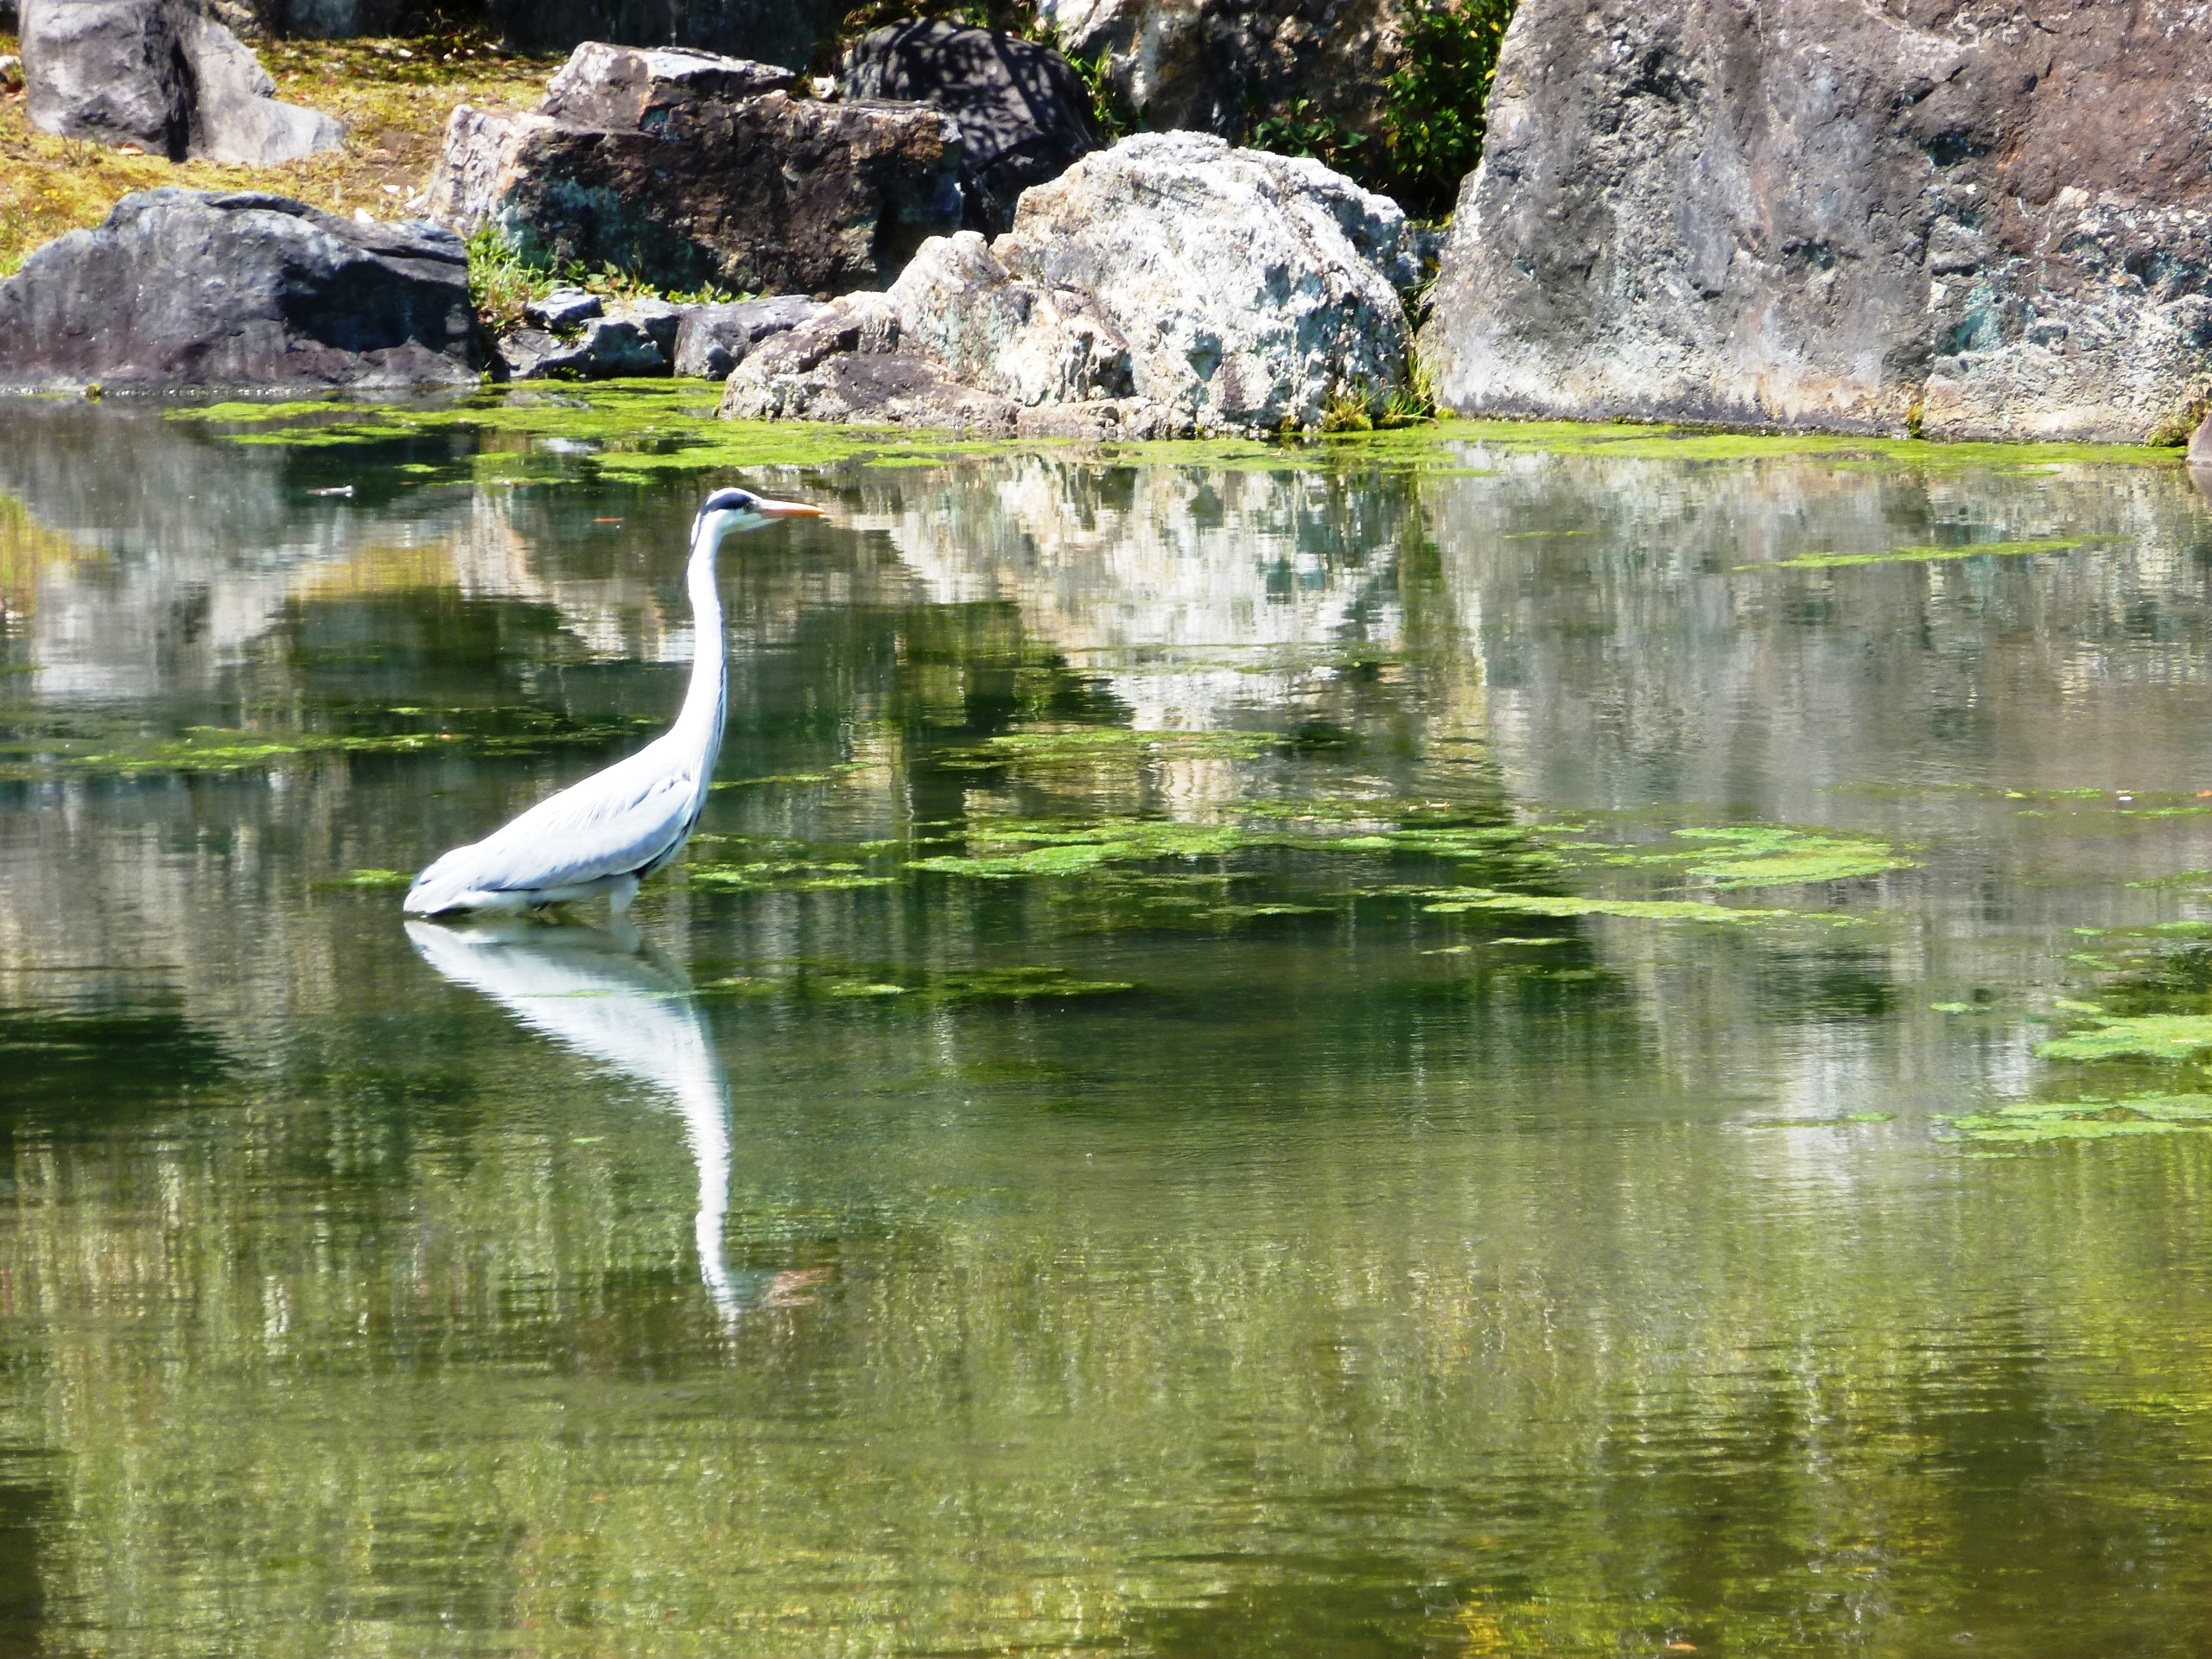 Heron, Nijo Castle Kyoto, Japan